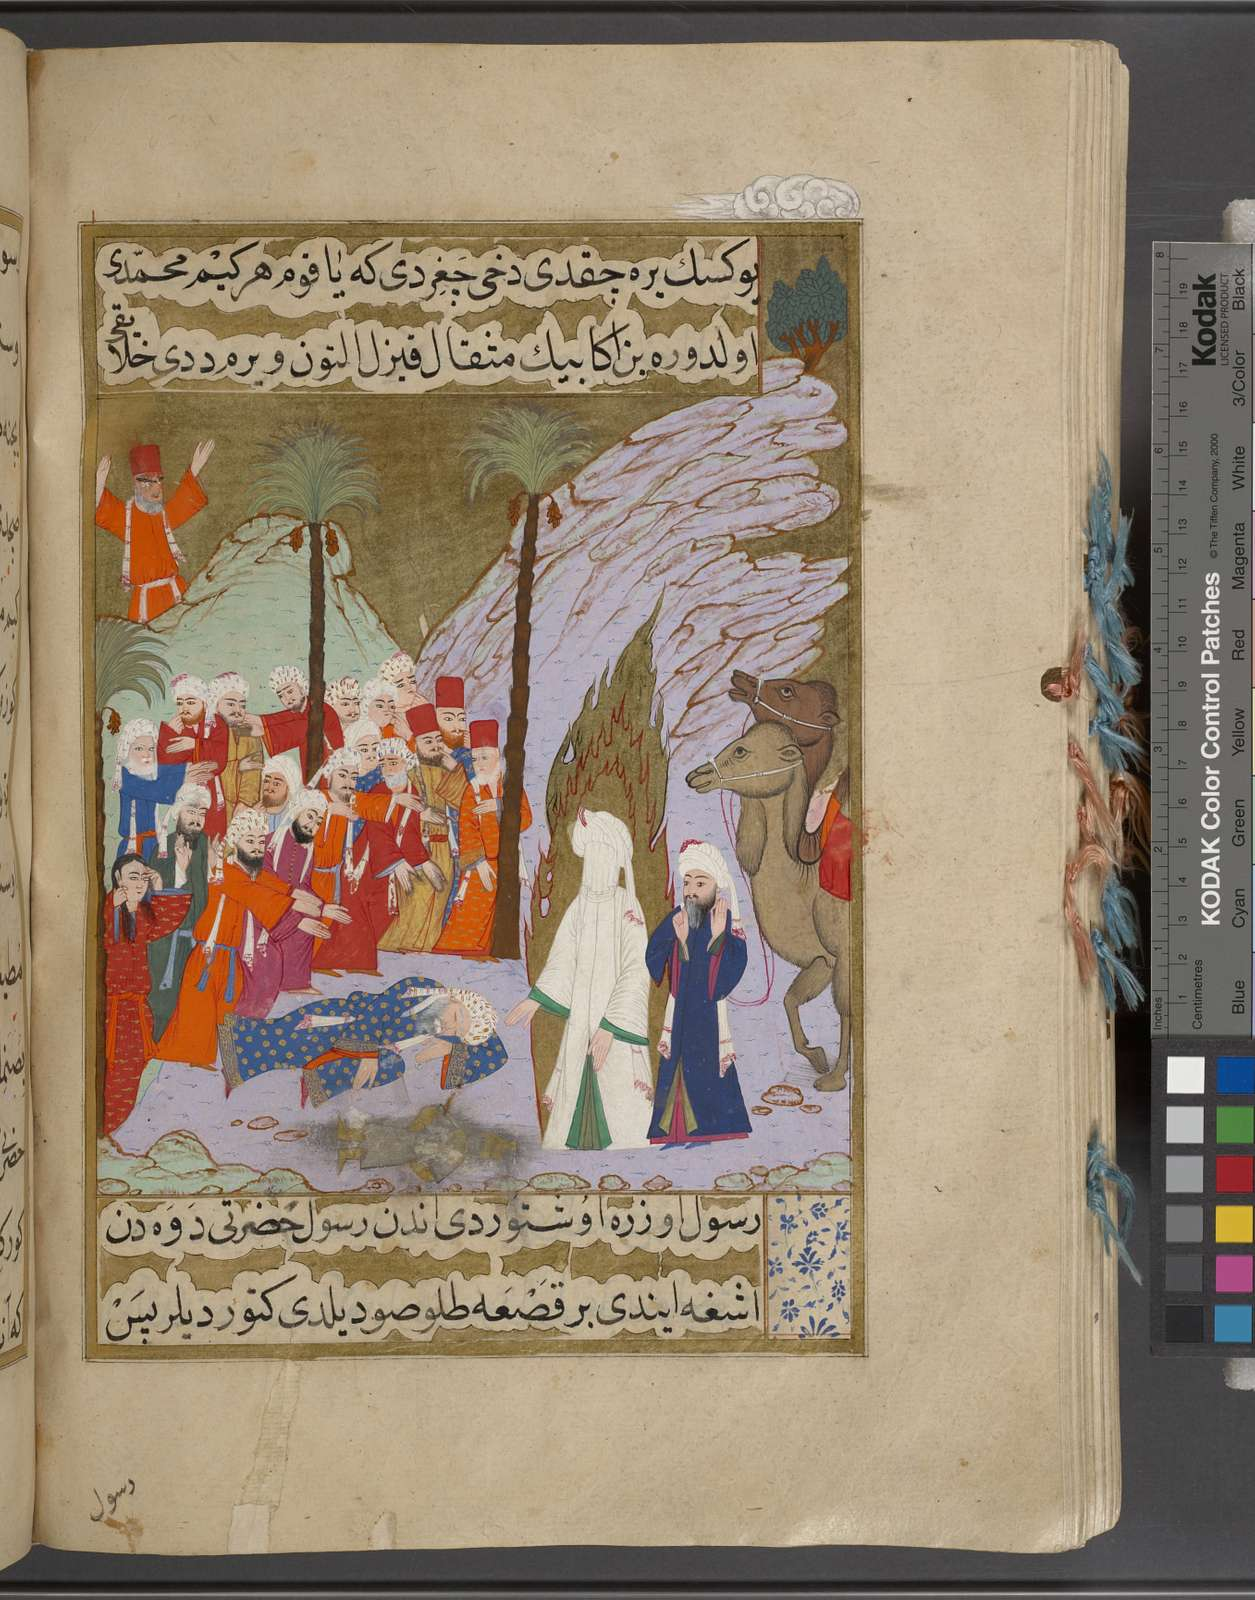 Mutî' and his idol collapse before the Prophet Muhammad, and the Jews beg Muhammad to restore Mutî's life.